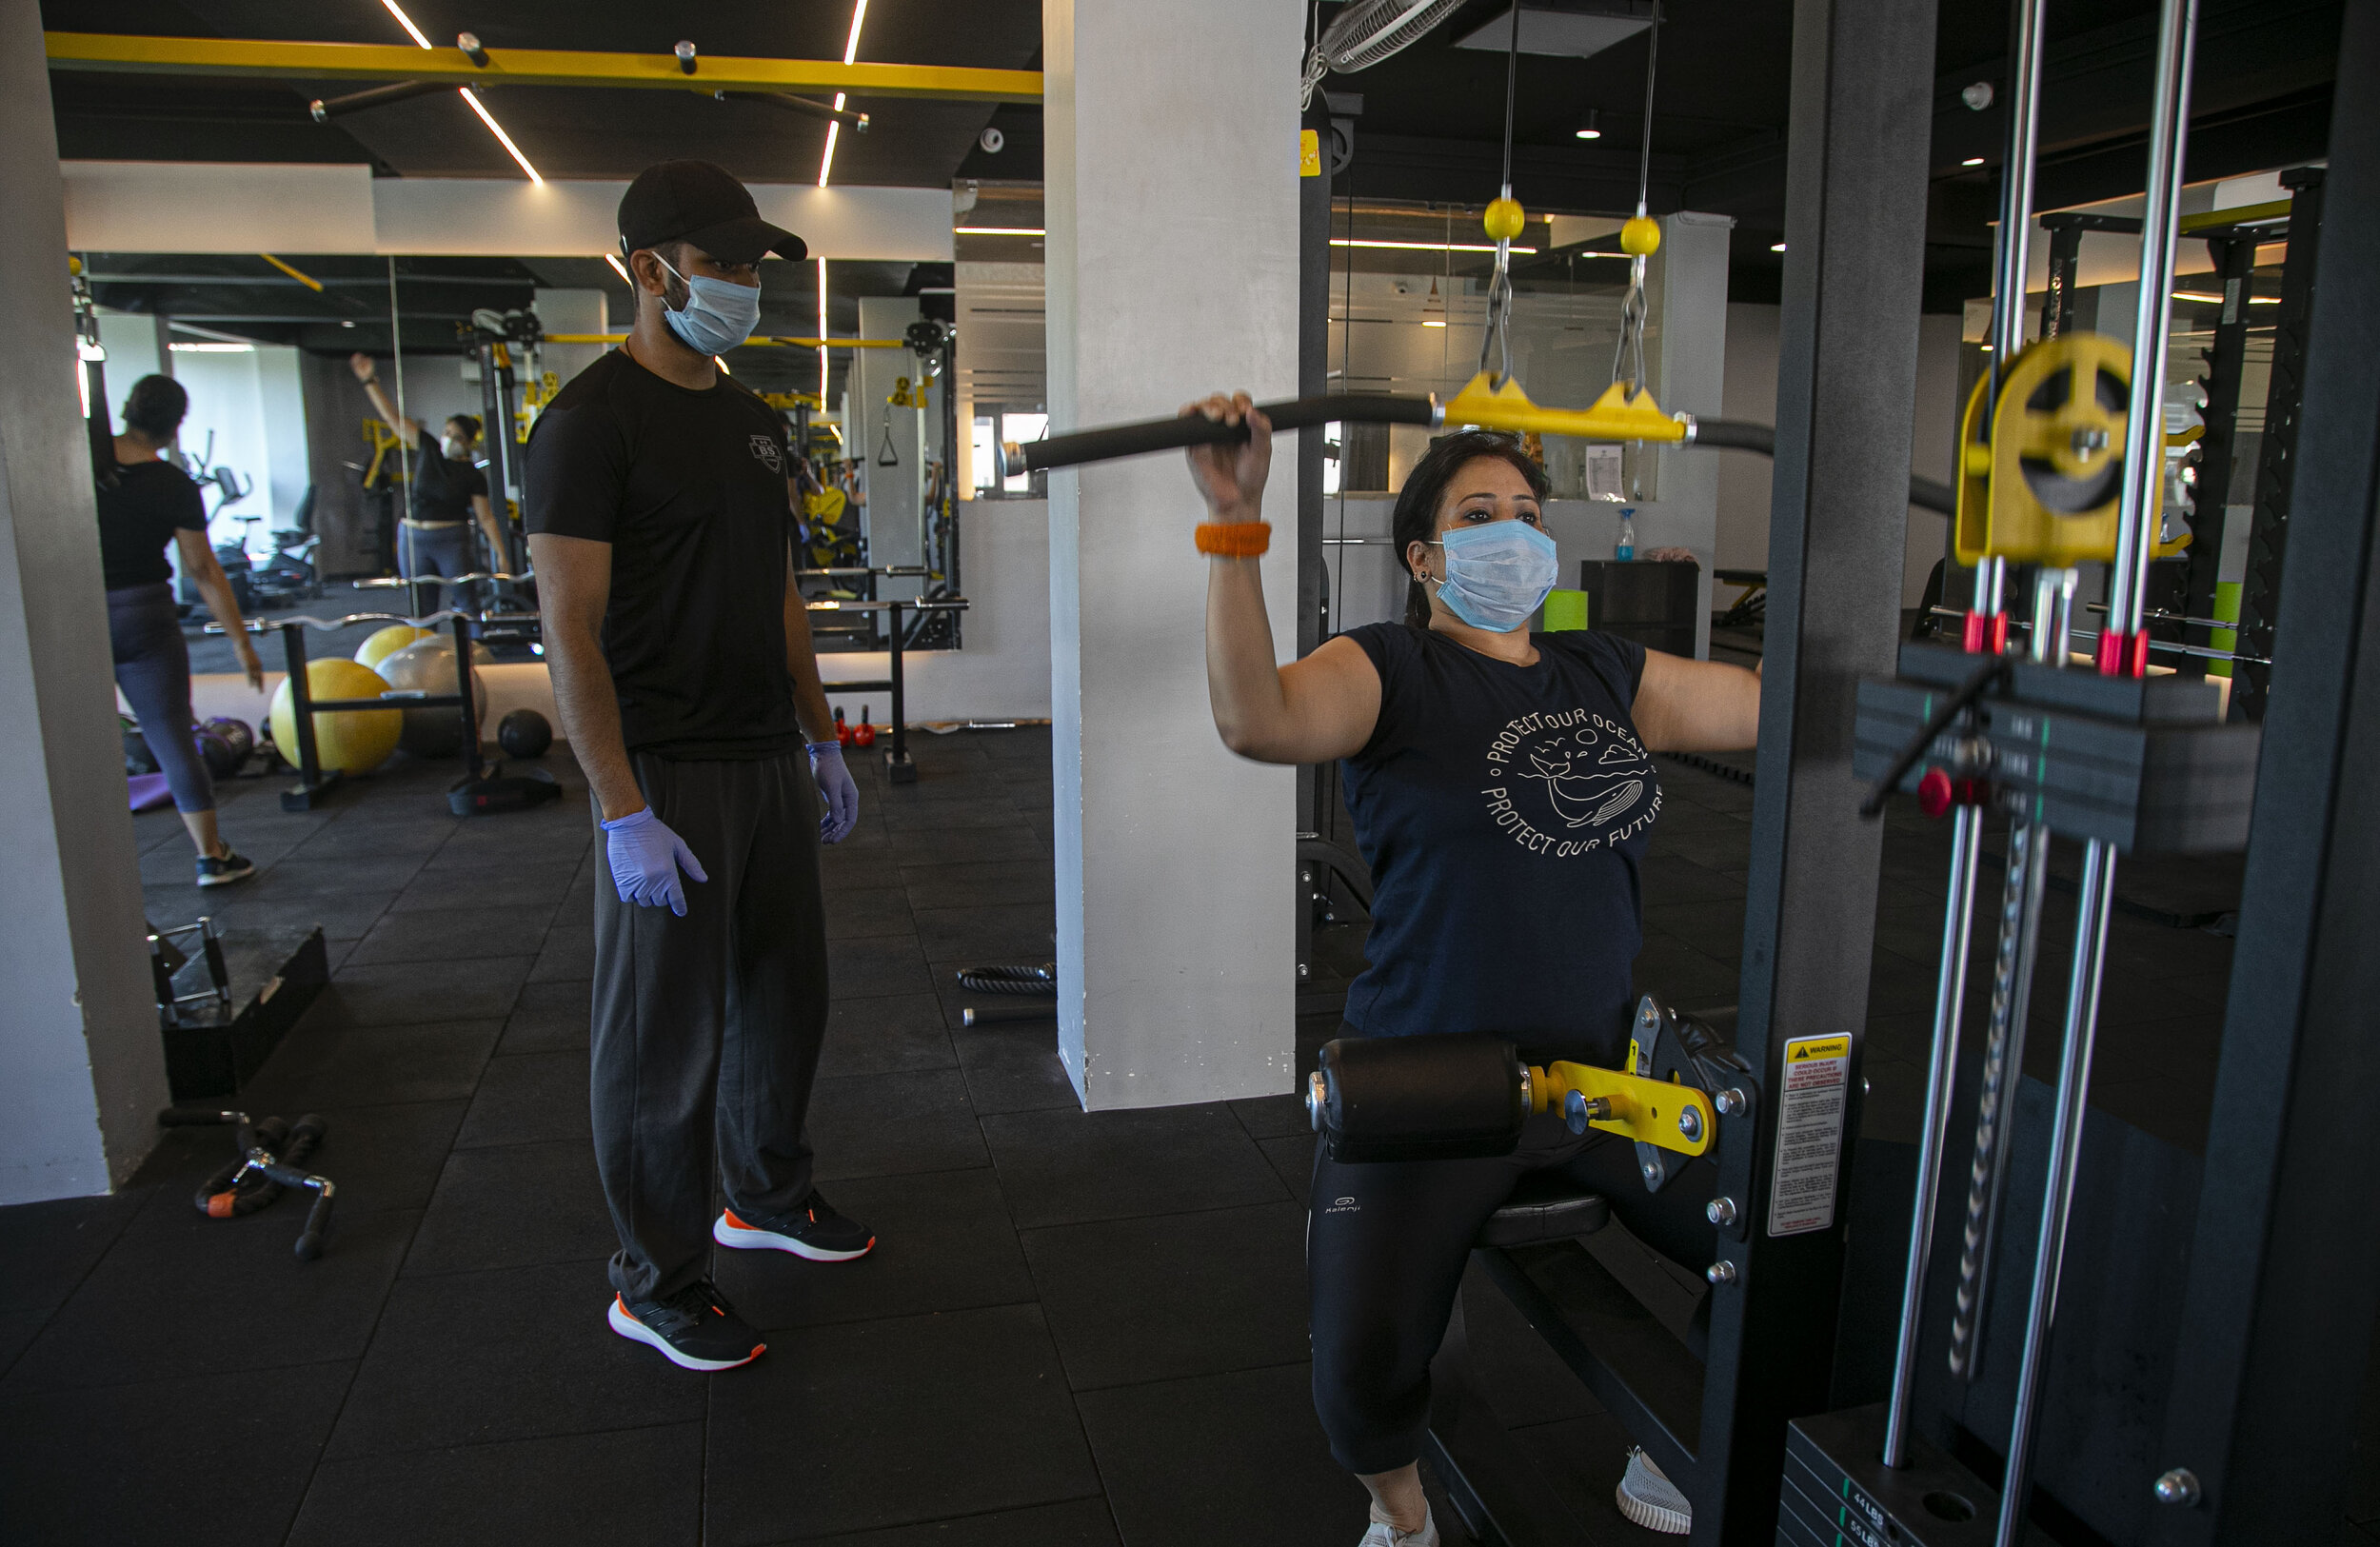 NYC gyms set to reopen Sept. 2. Will you be going back? — Queens Daily Eagle